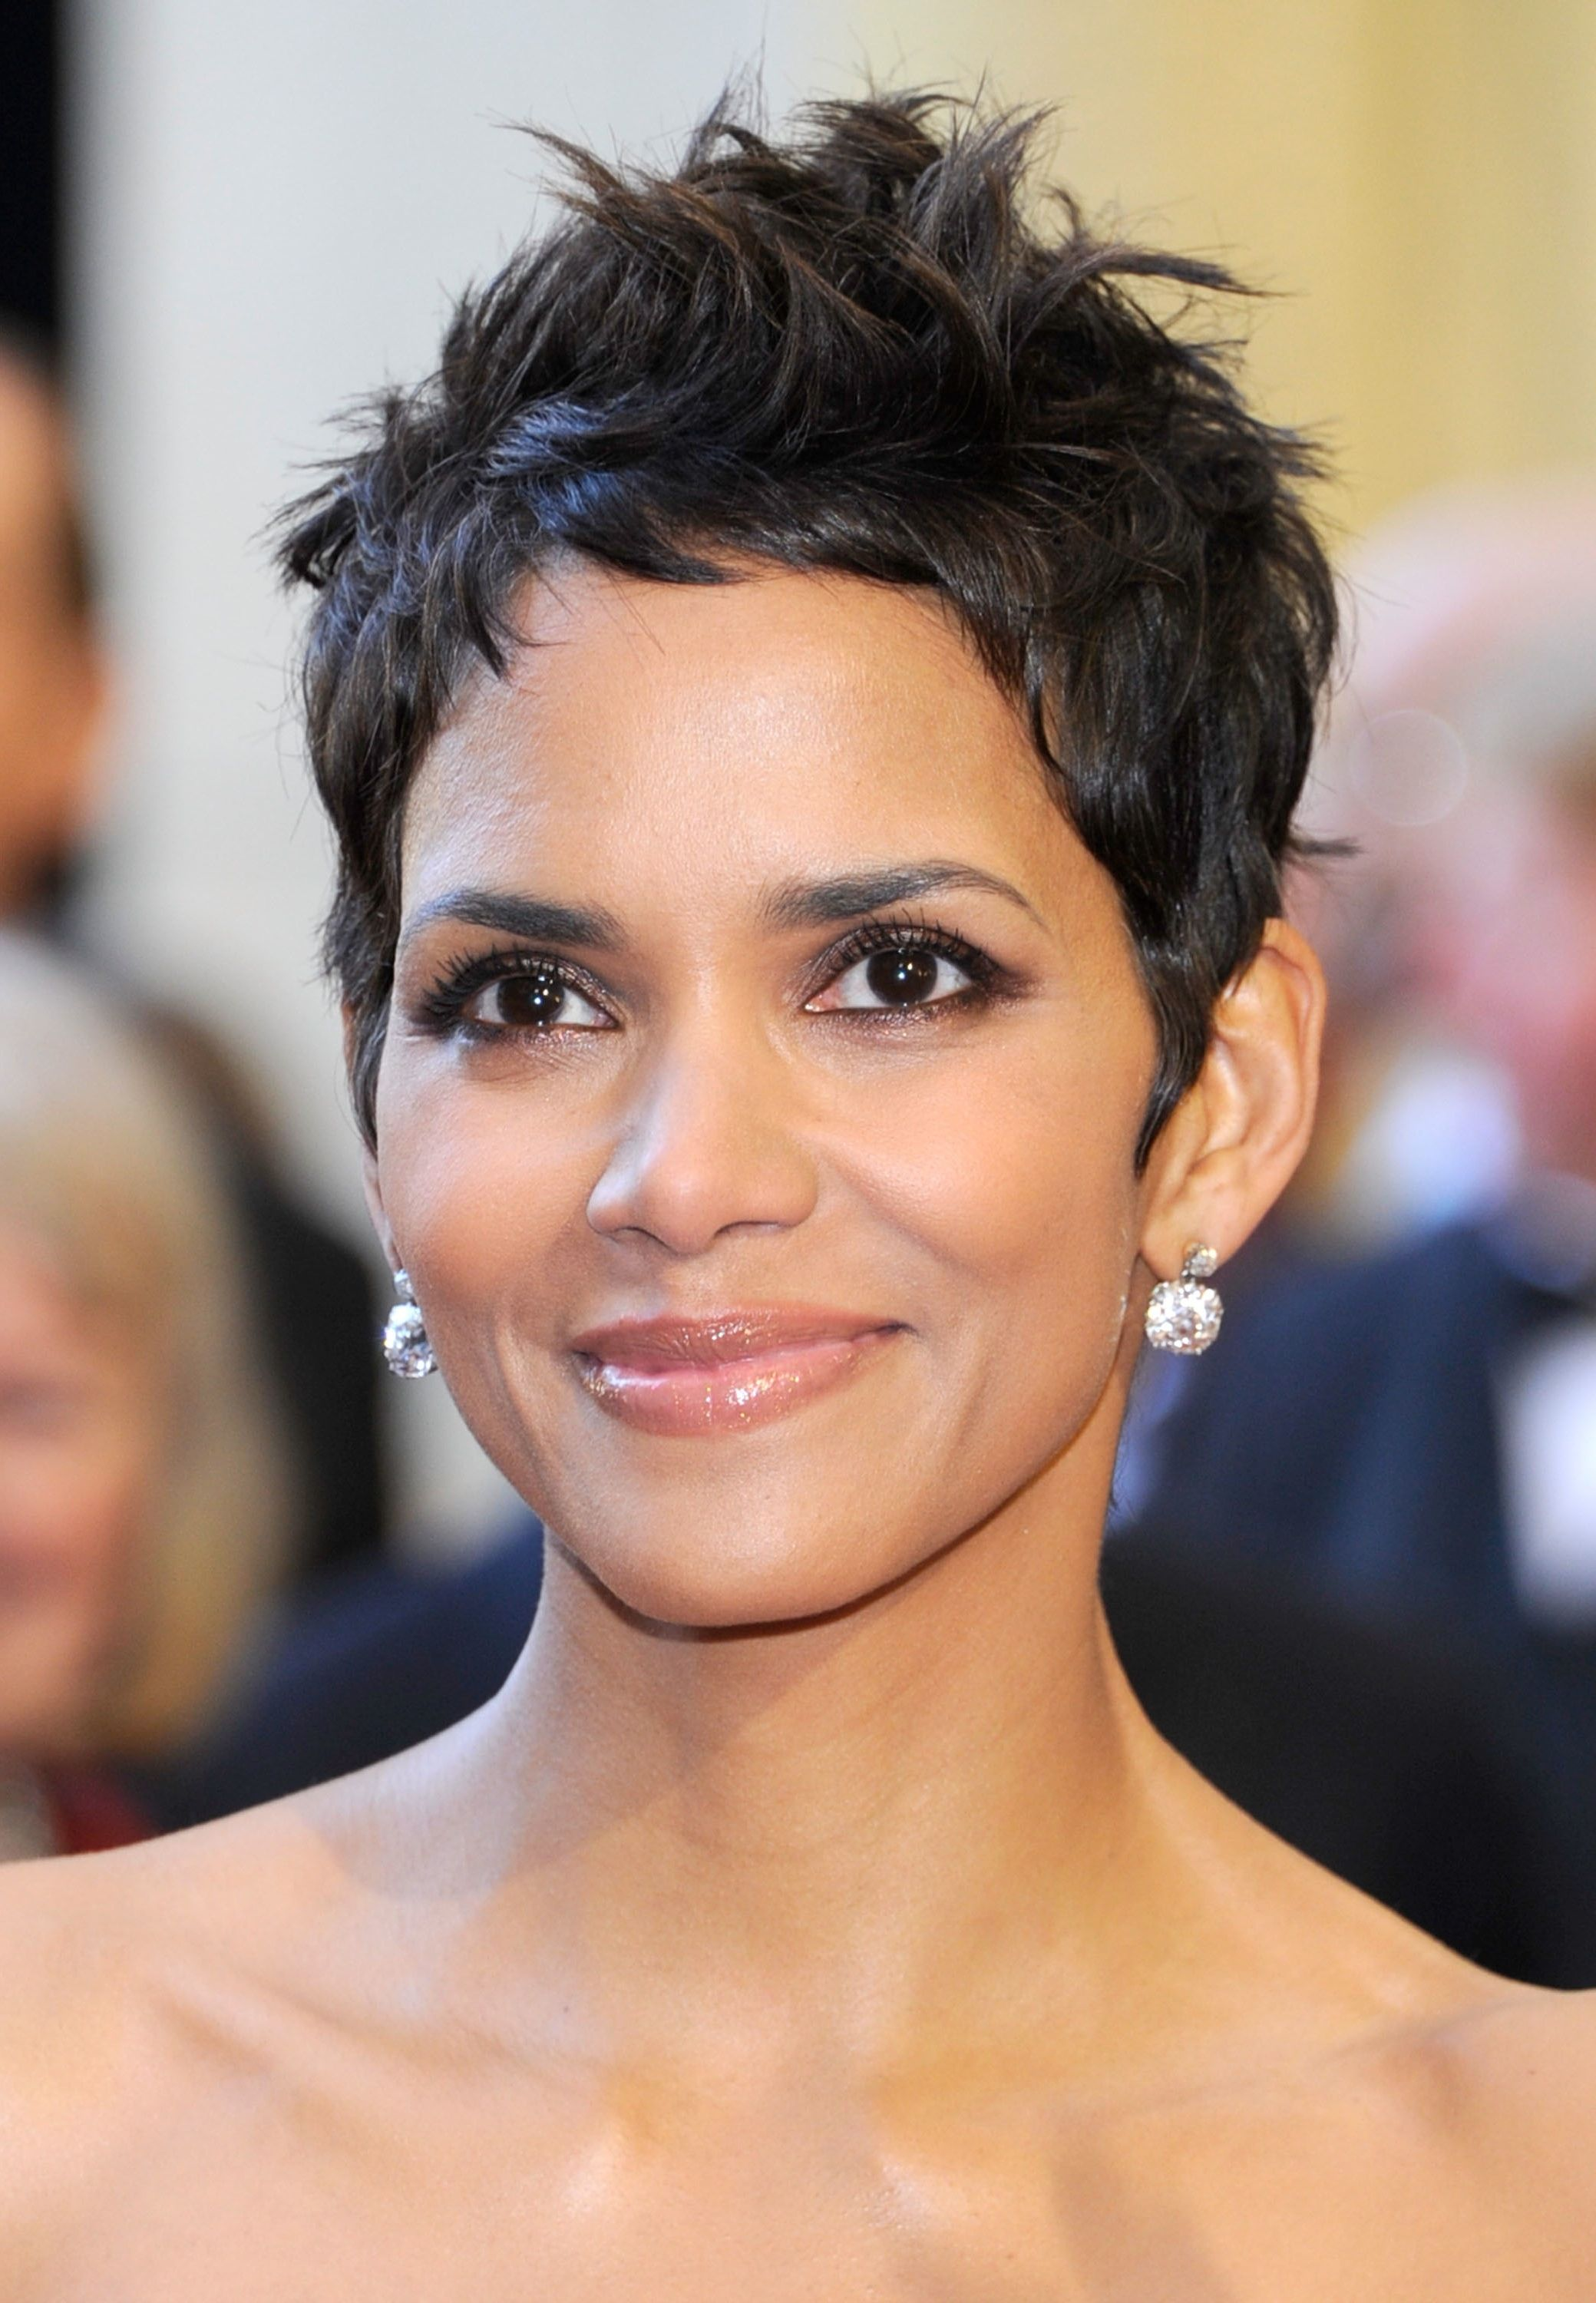 15 Pixie Hairstyles for Women Over 50 | Halle Berry Pixie Cut ...